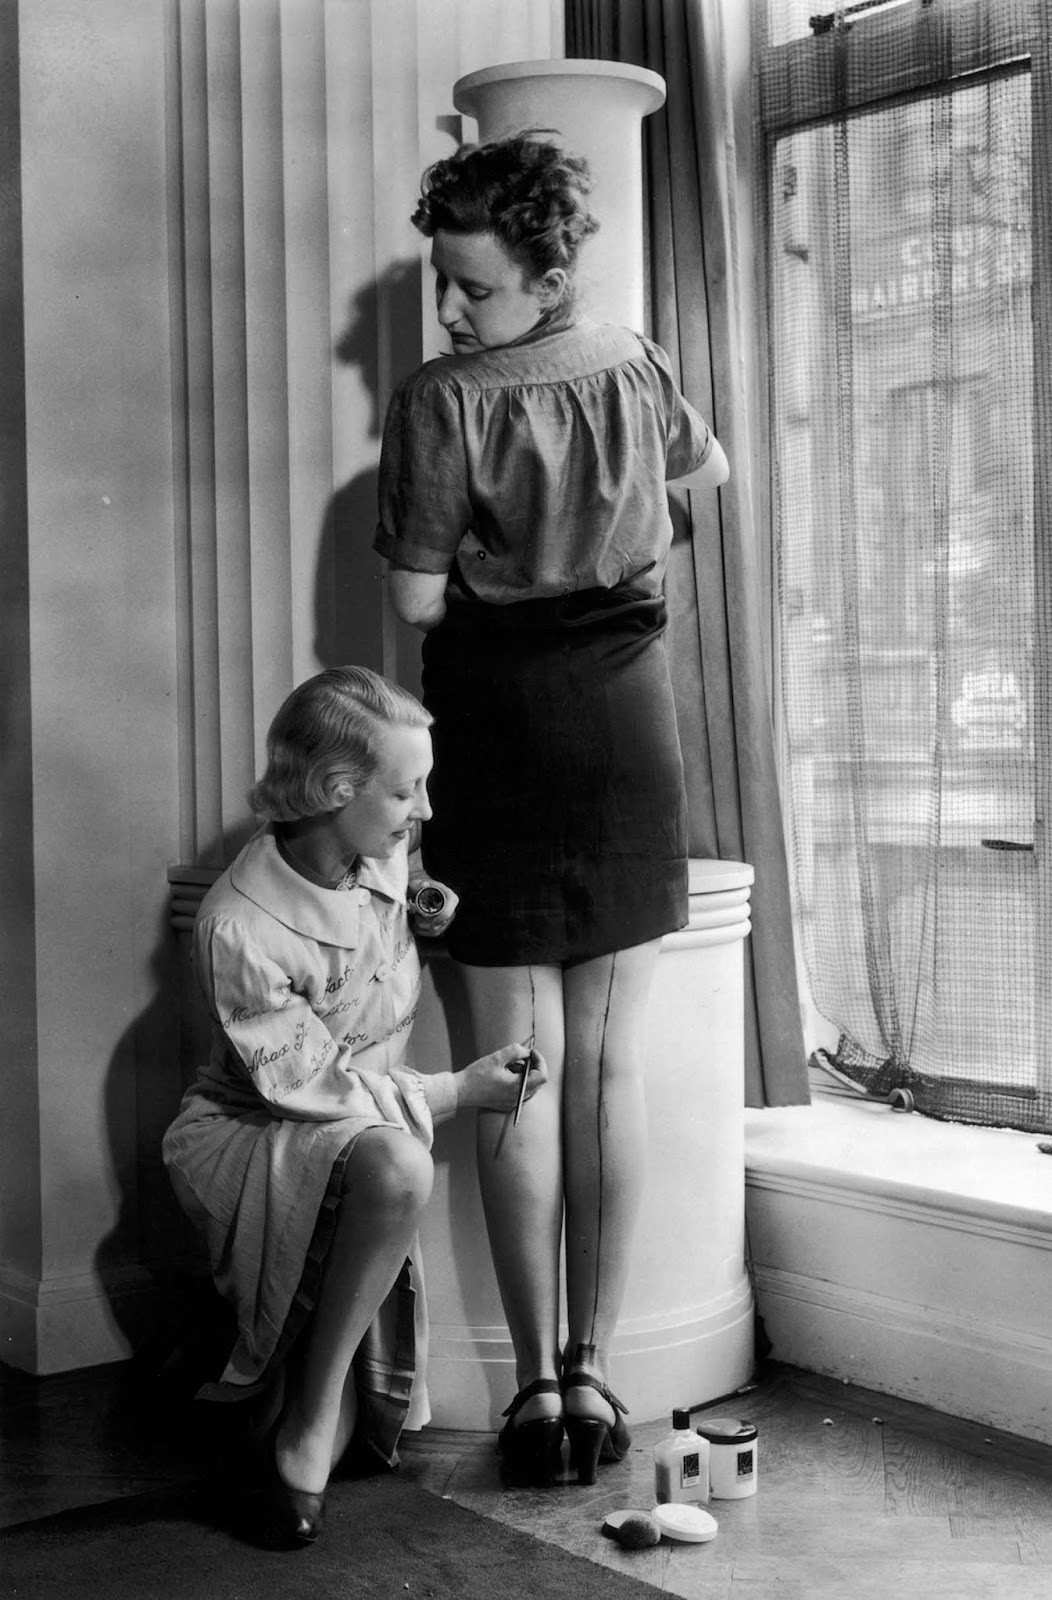 A Max Factor beautician paints a seam on a woman's leg to help create the illusion of stockings.